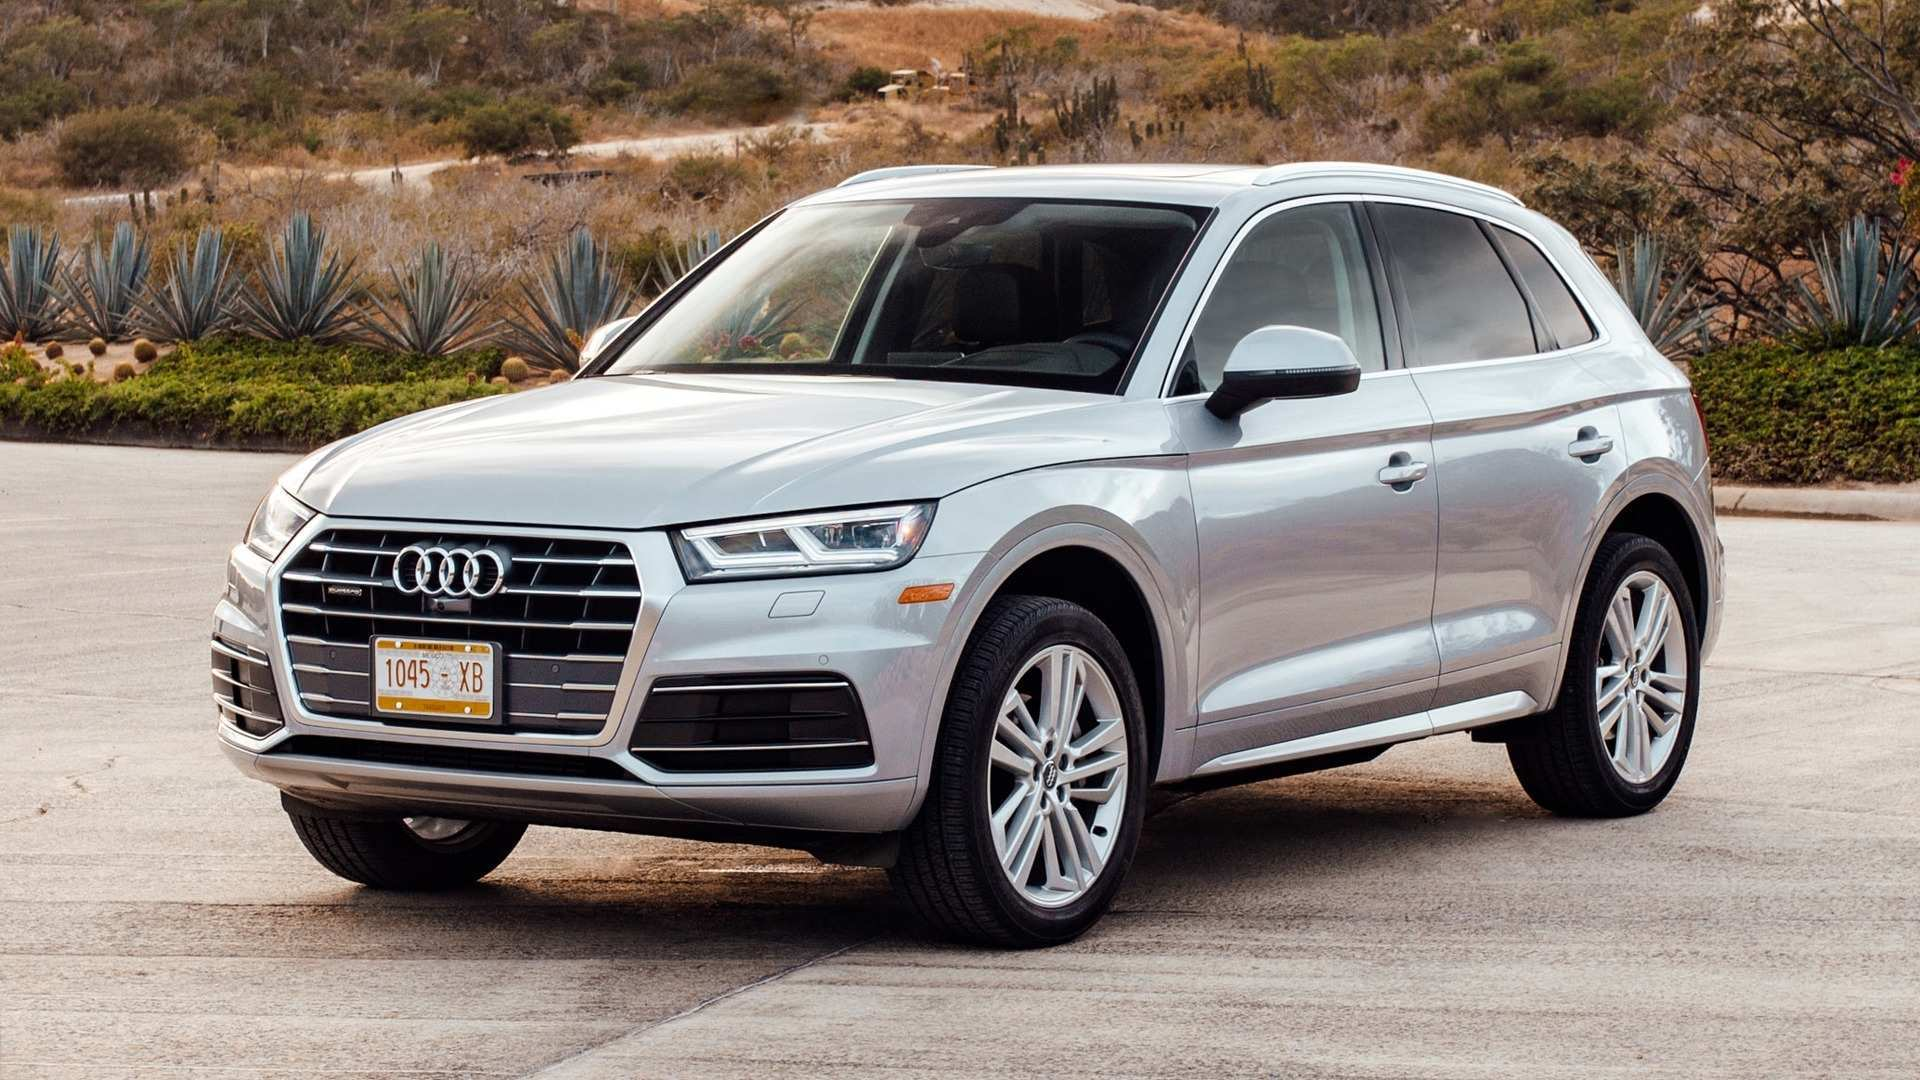 16 Concept of Best Audi 2019 Models Q5 Picture Release Date And Review First Drive for Best Audi 2019 Models Q5 Picture Release Date And Review